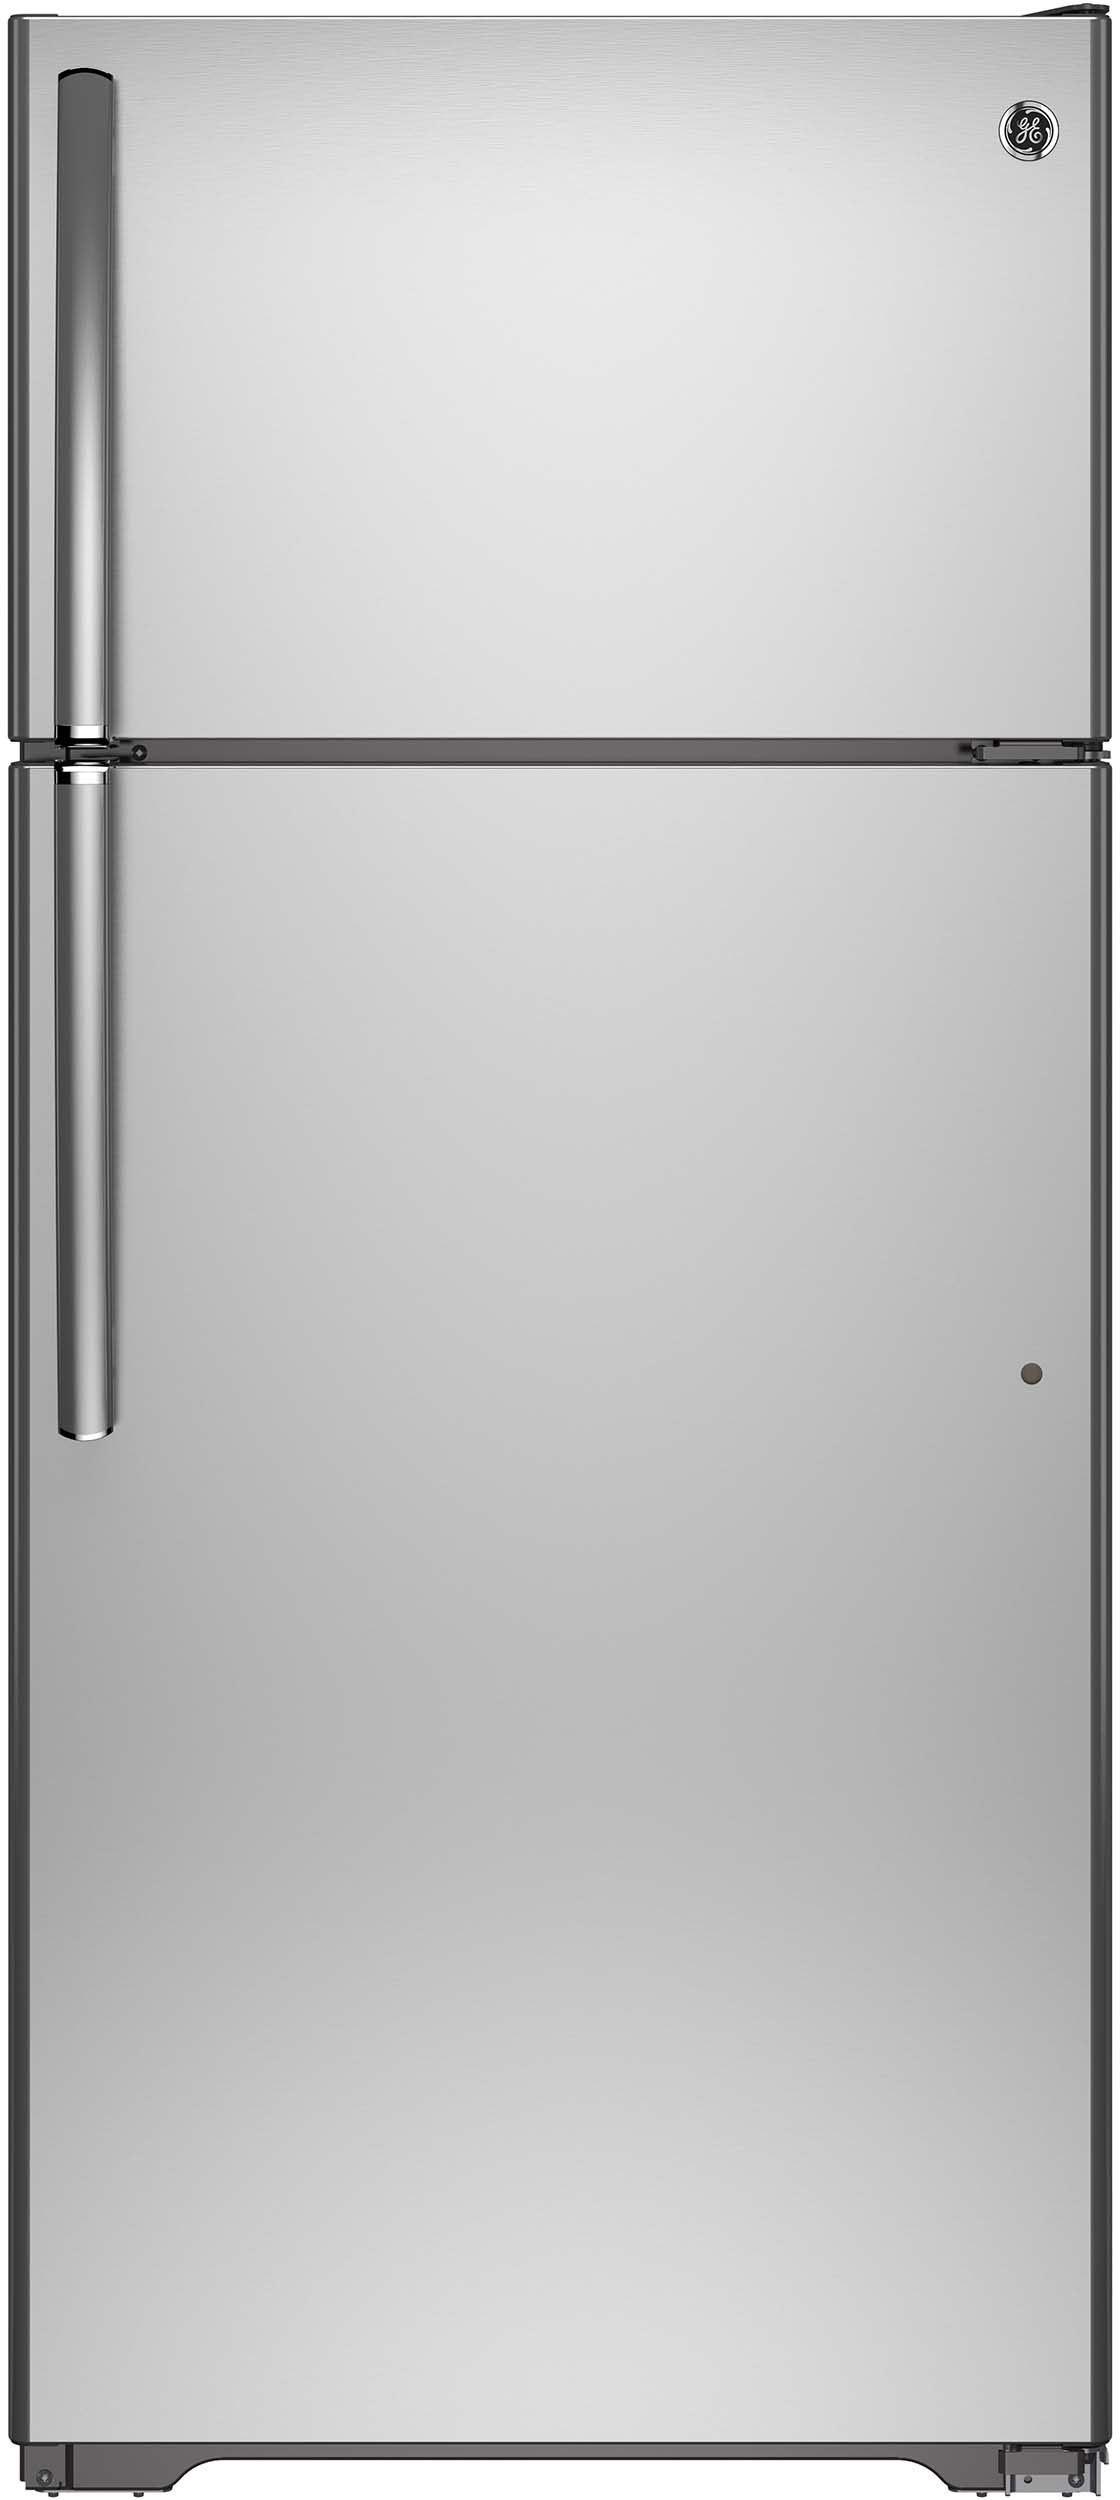 Ge 30 inch side by side white refrigerator - Ge 30 Inch Side By Side White Refrigerator 41